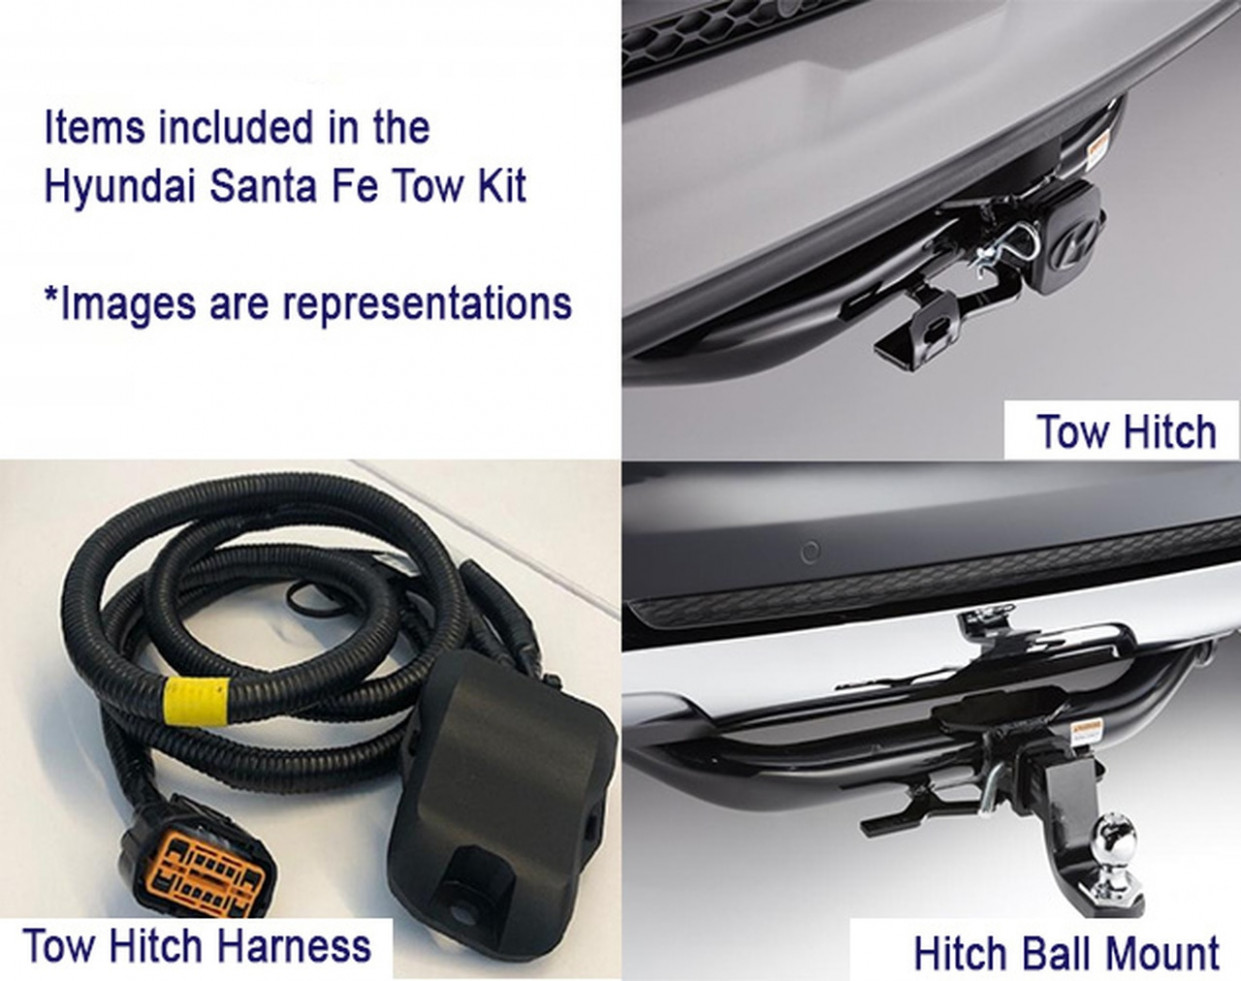 8-8 Hyundai Santa Fe Towing Accessories Kit (I8)